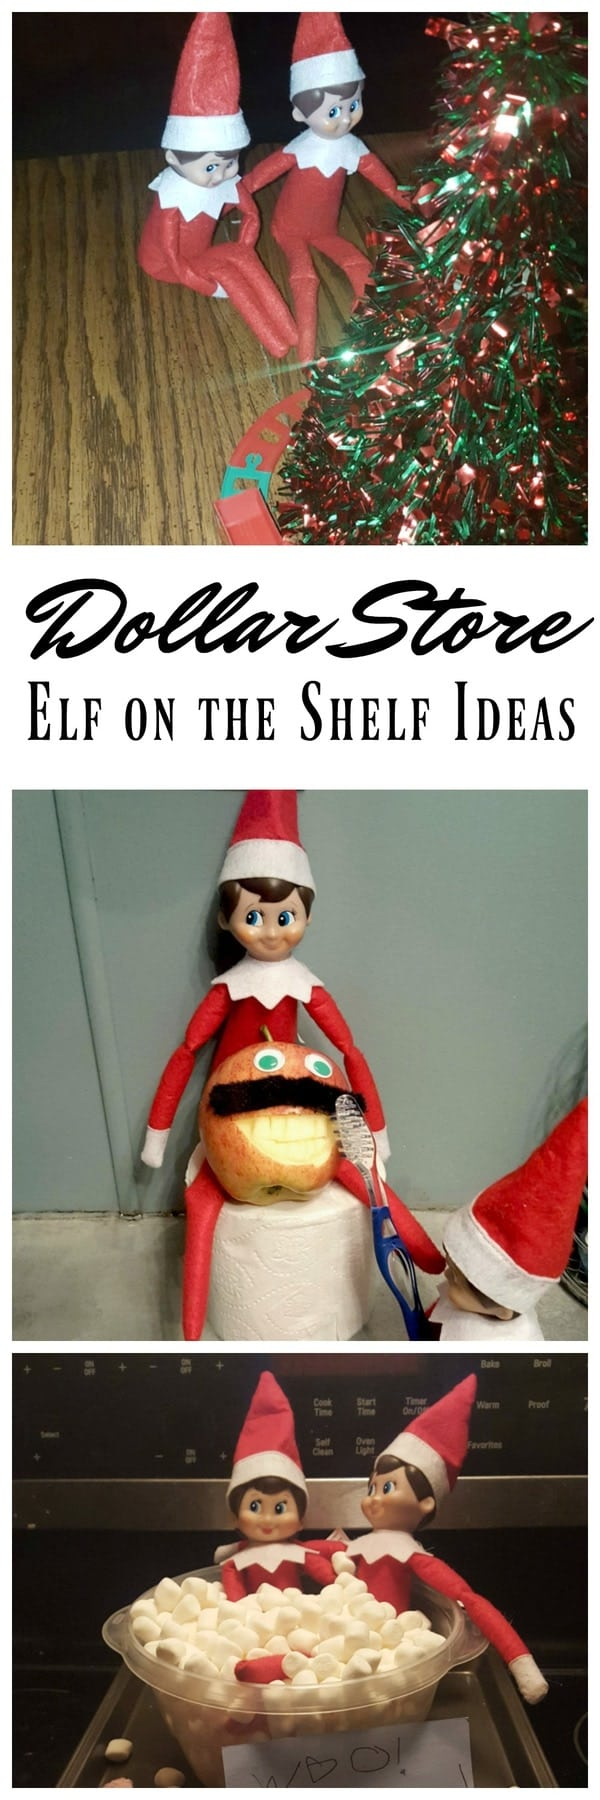 dollar store elf on the shelf toys ideas midgetmomma. Black Bedroom Furniture Sets. Home Design Ideas